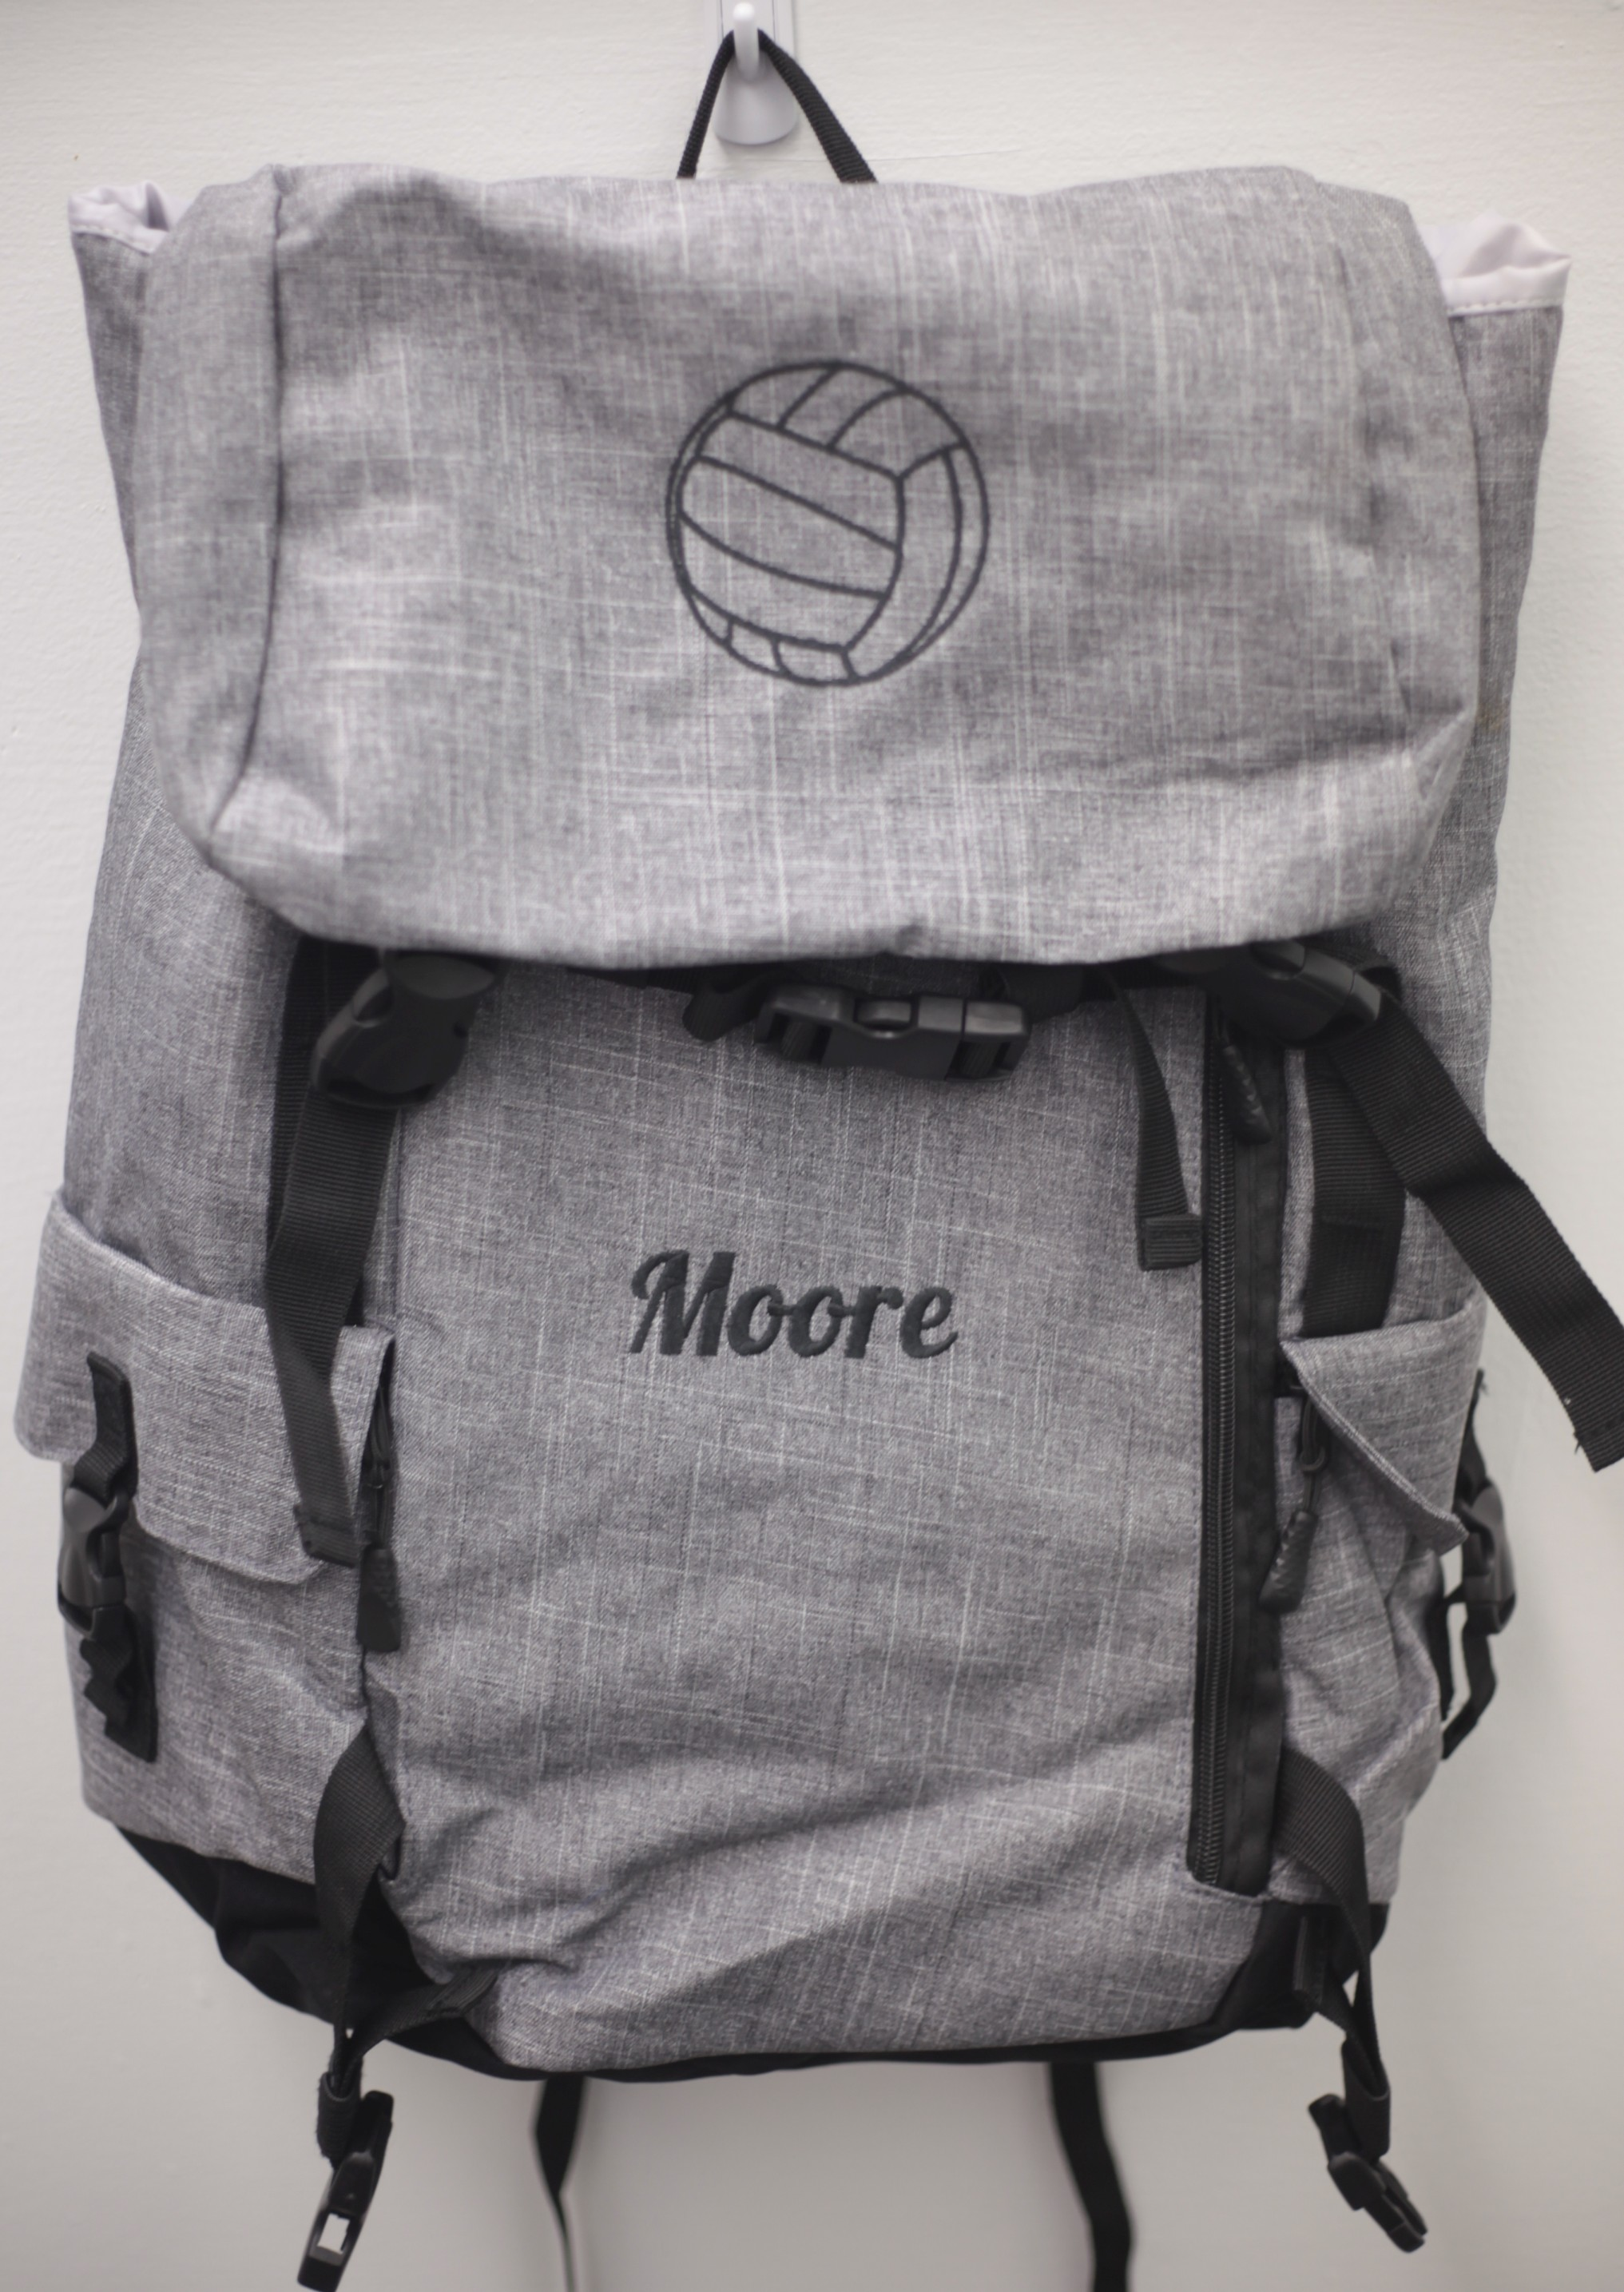 We can embroider backpacks with names and designs